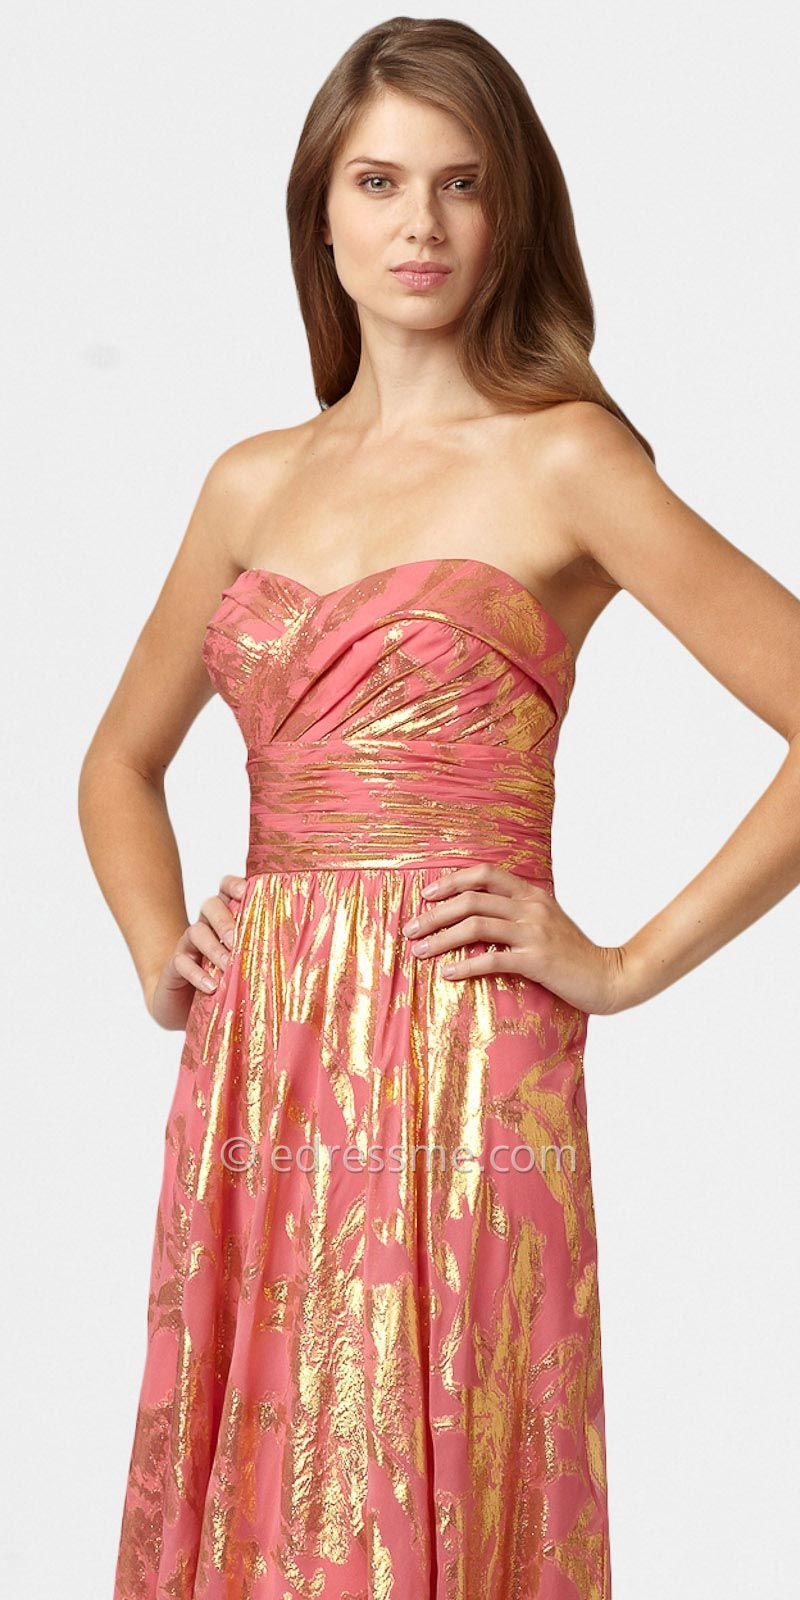 Classic Prom Dresses with Foil Prints by Aidan Mattox at eDressMe ...